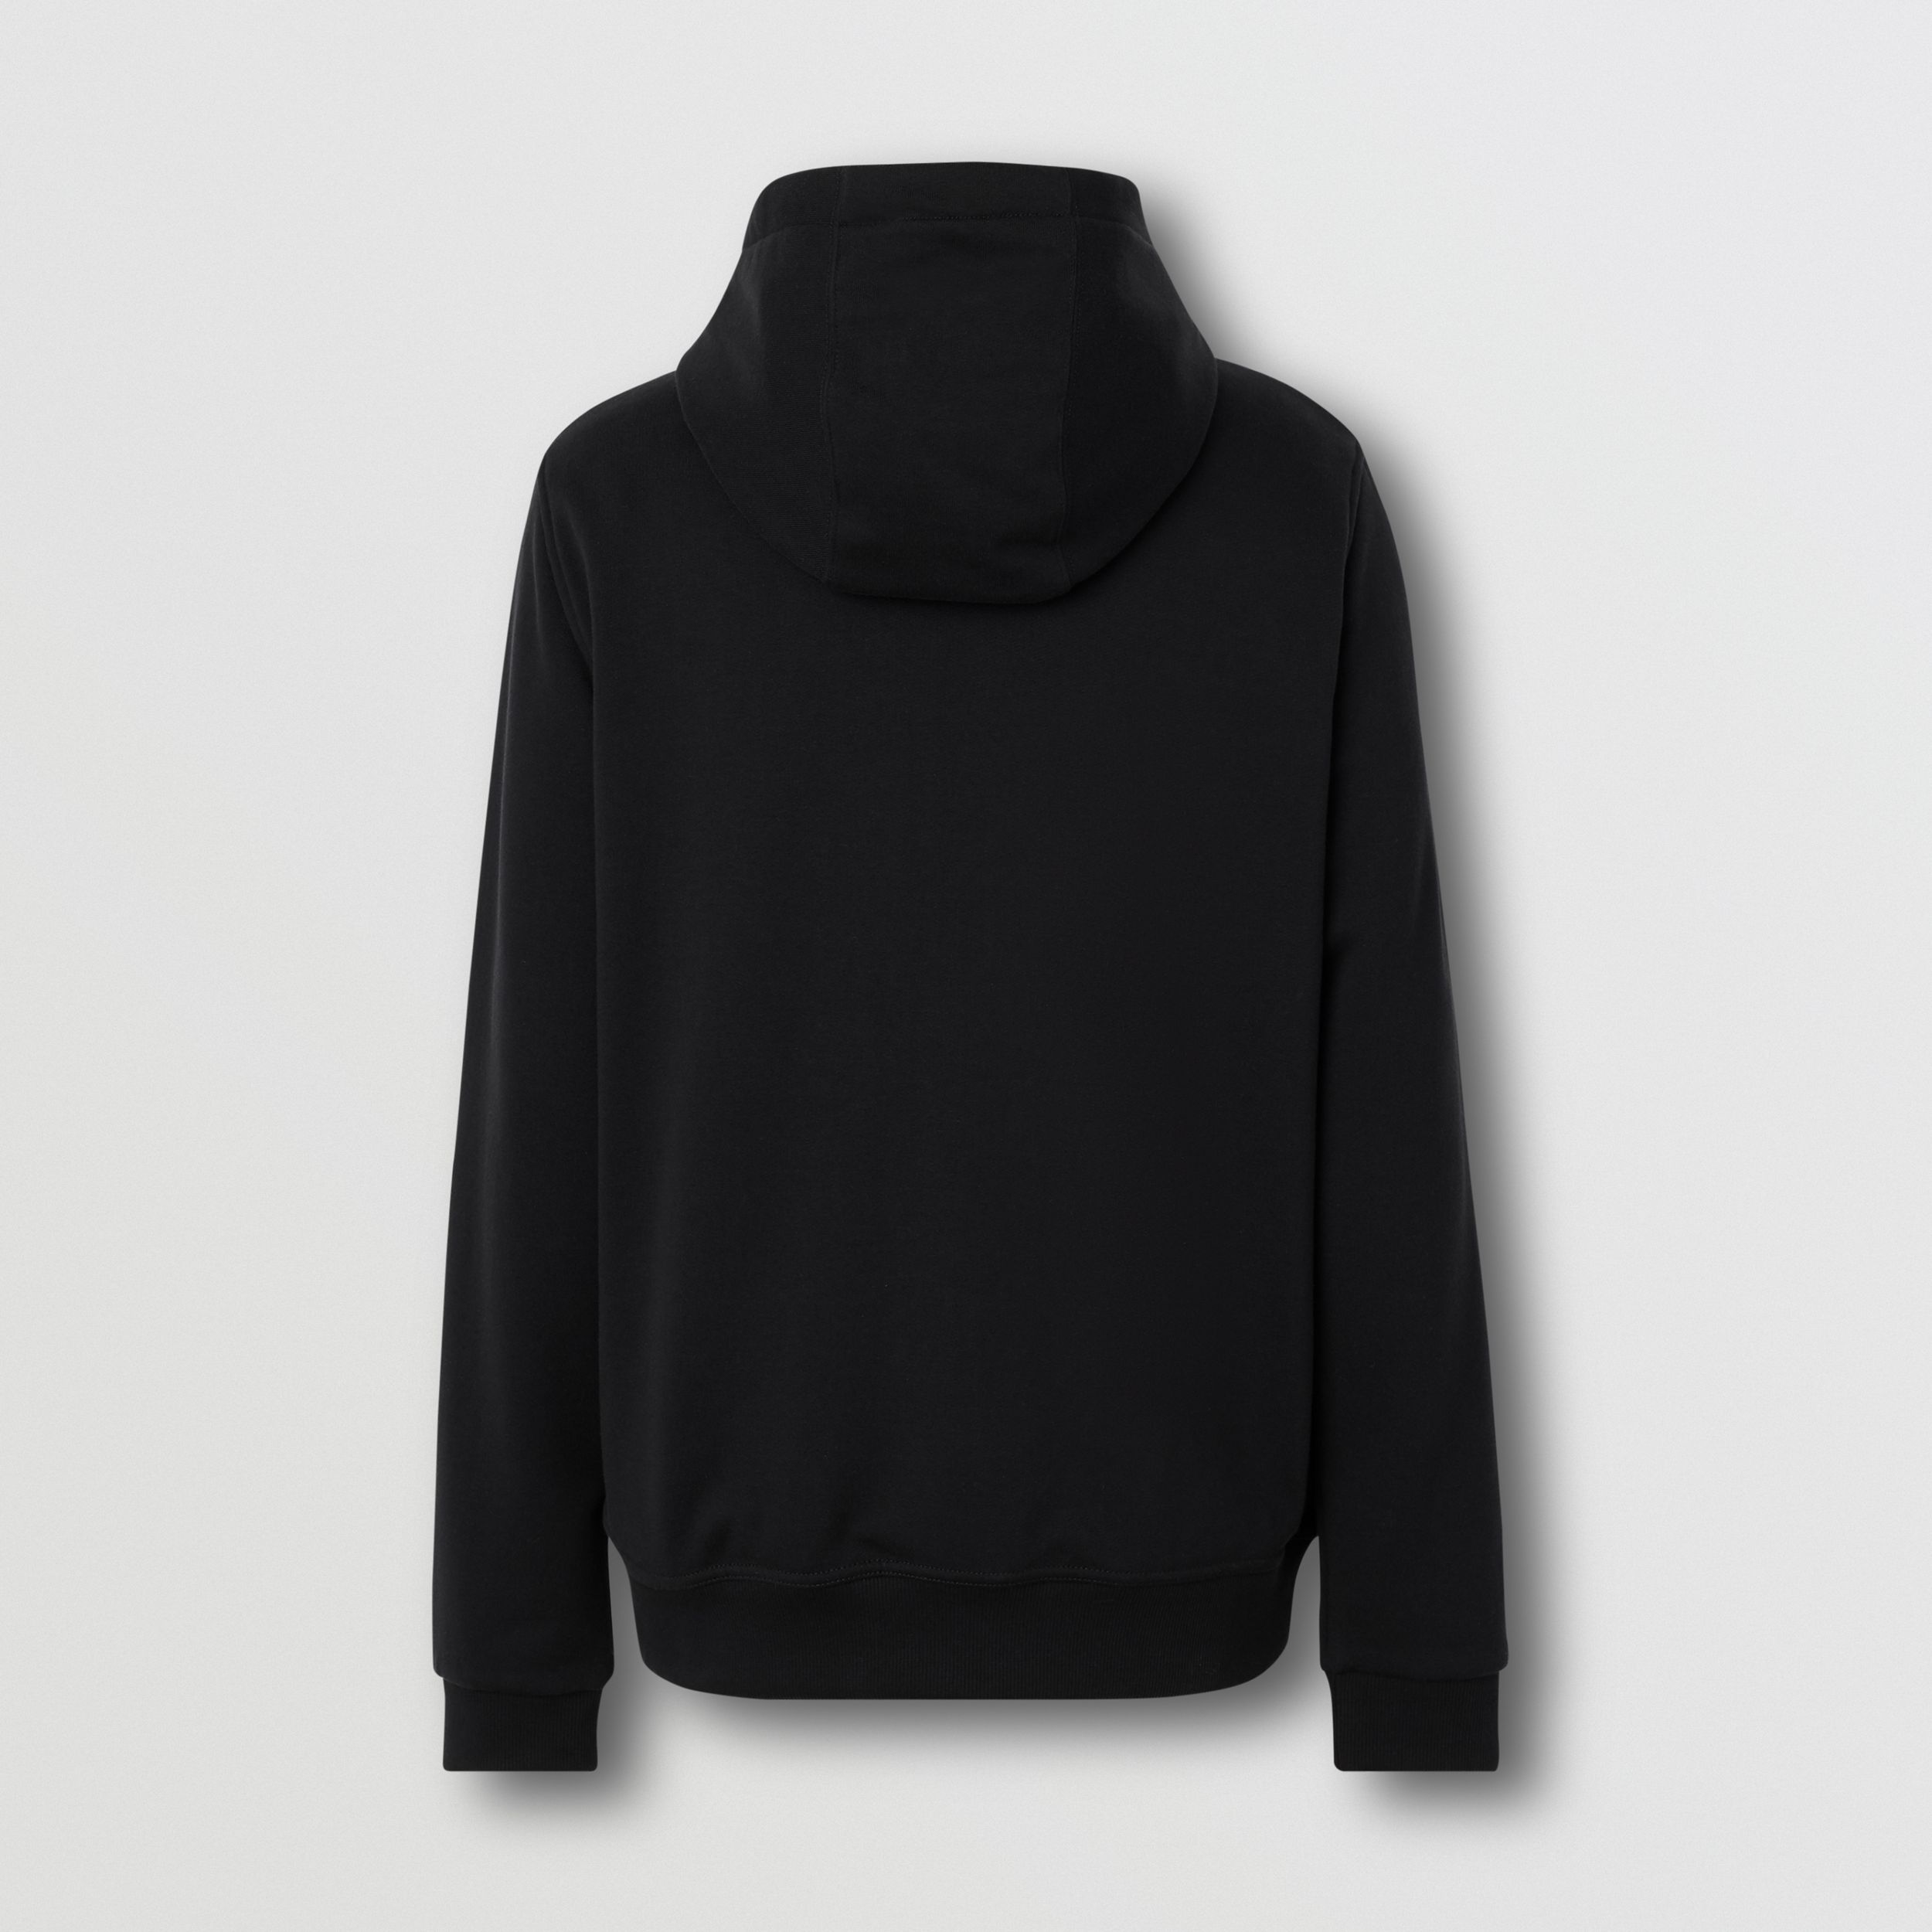 Logo Appliqué Cotton Hooded Top in Black - Men | Burberry Hong Kong S.A.R. - 2